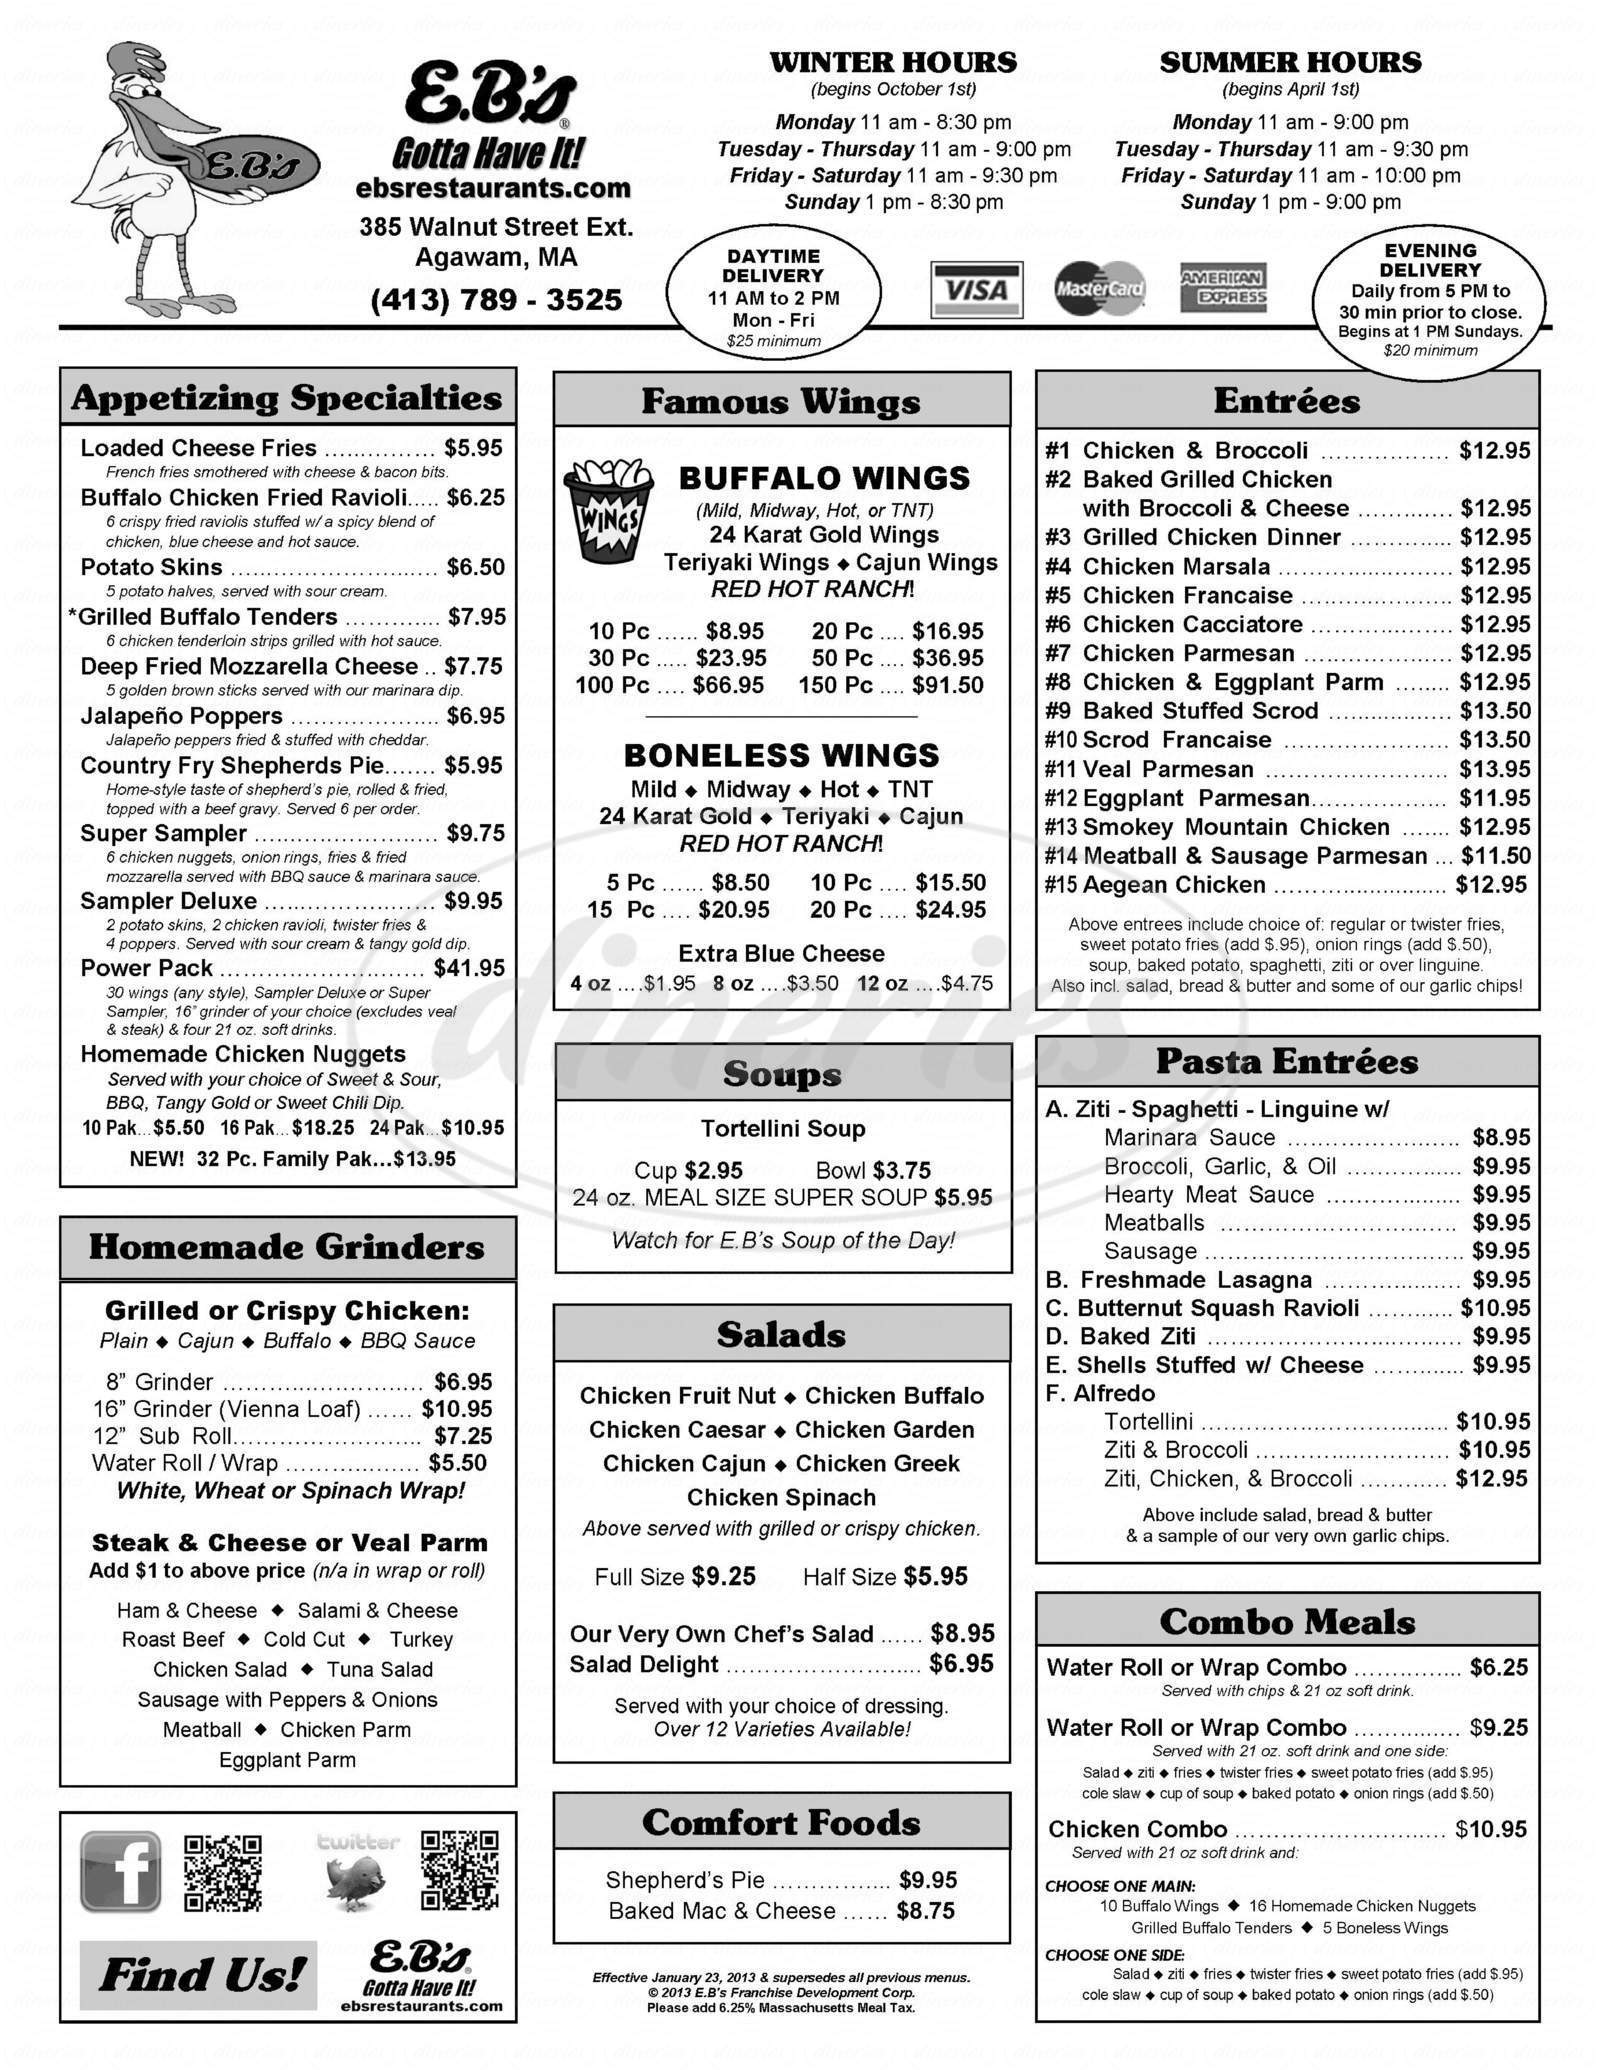 menu for E B's Speciality Chicken Restaurant